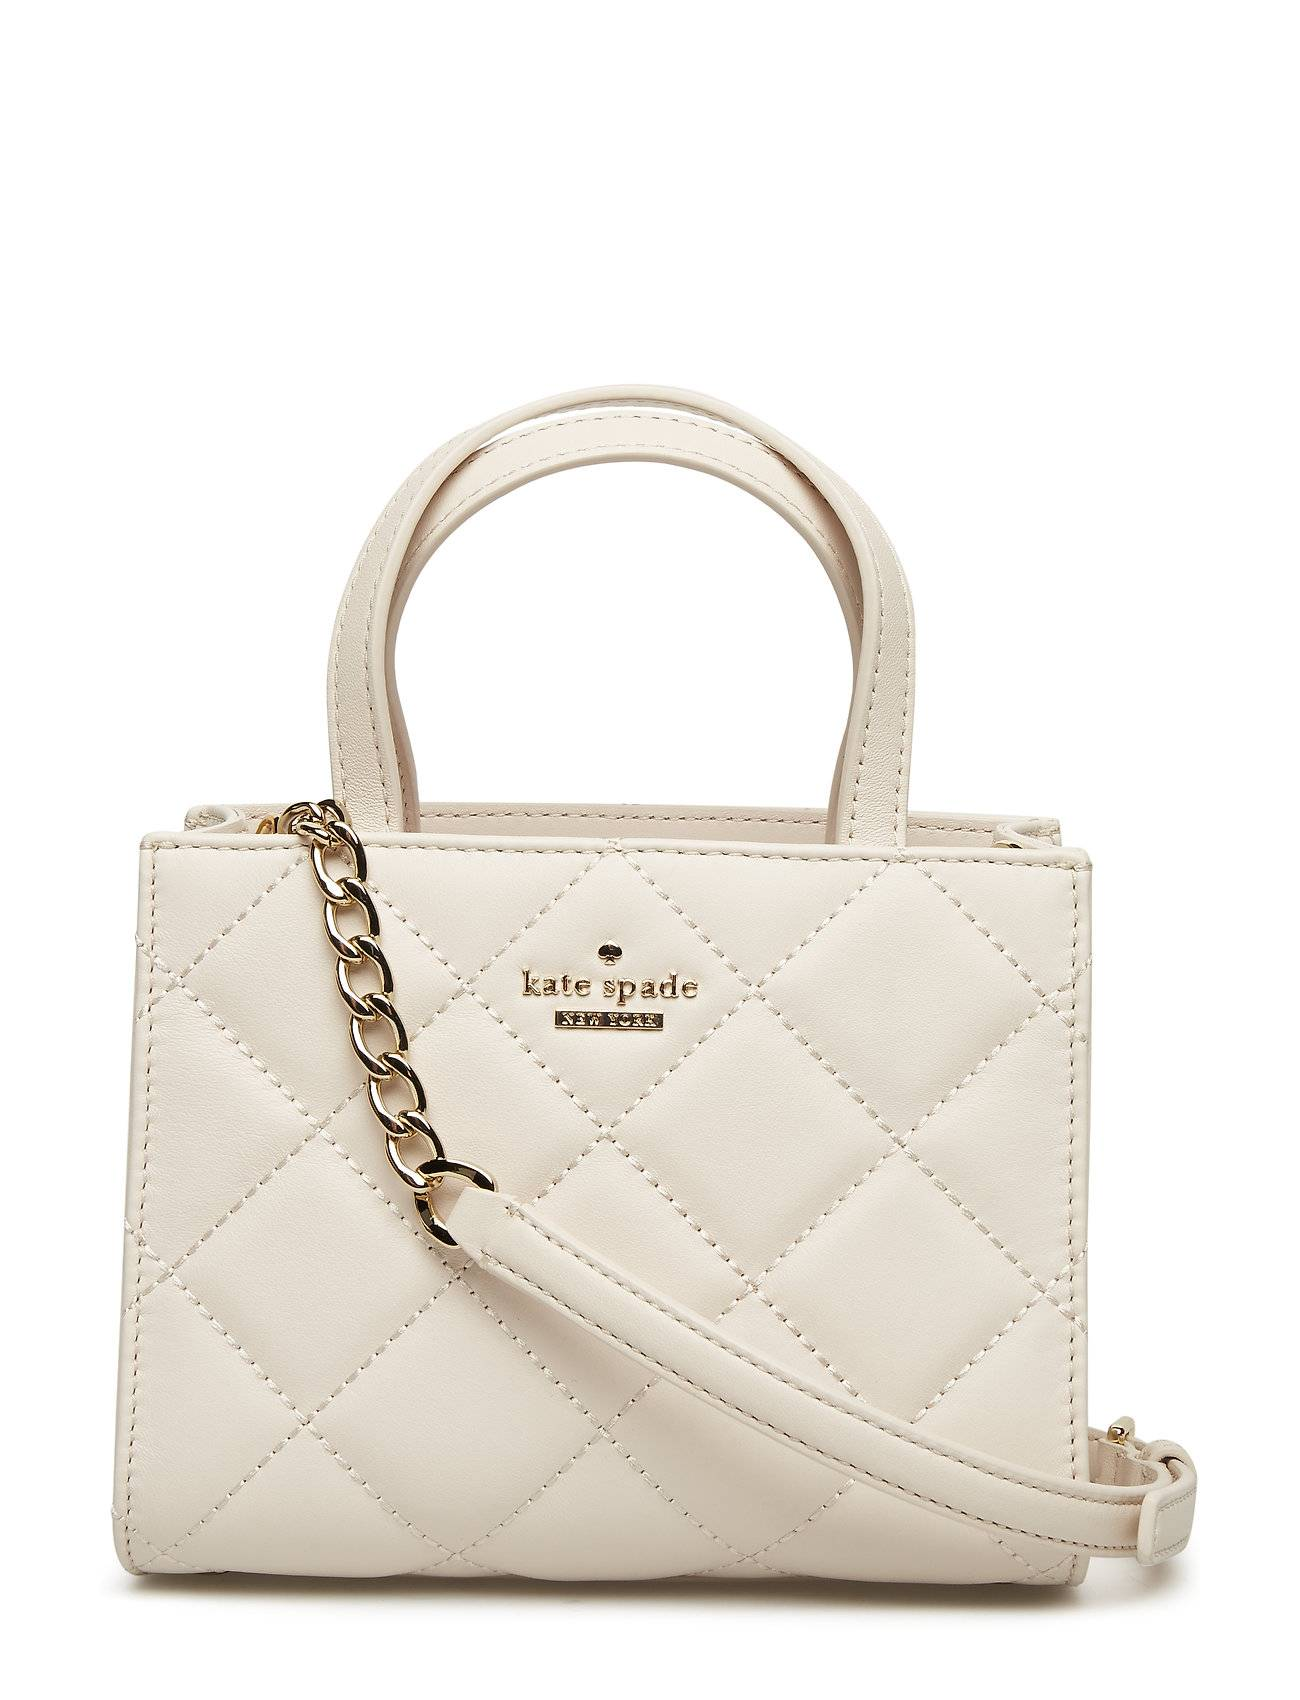 Kate Spade New York Emerson Place Small Sam